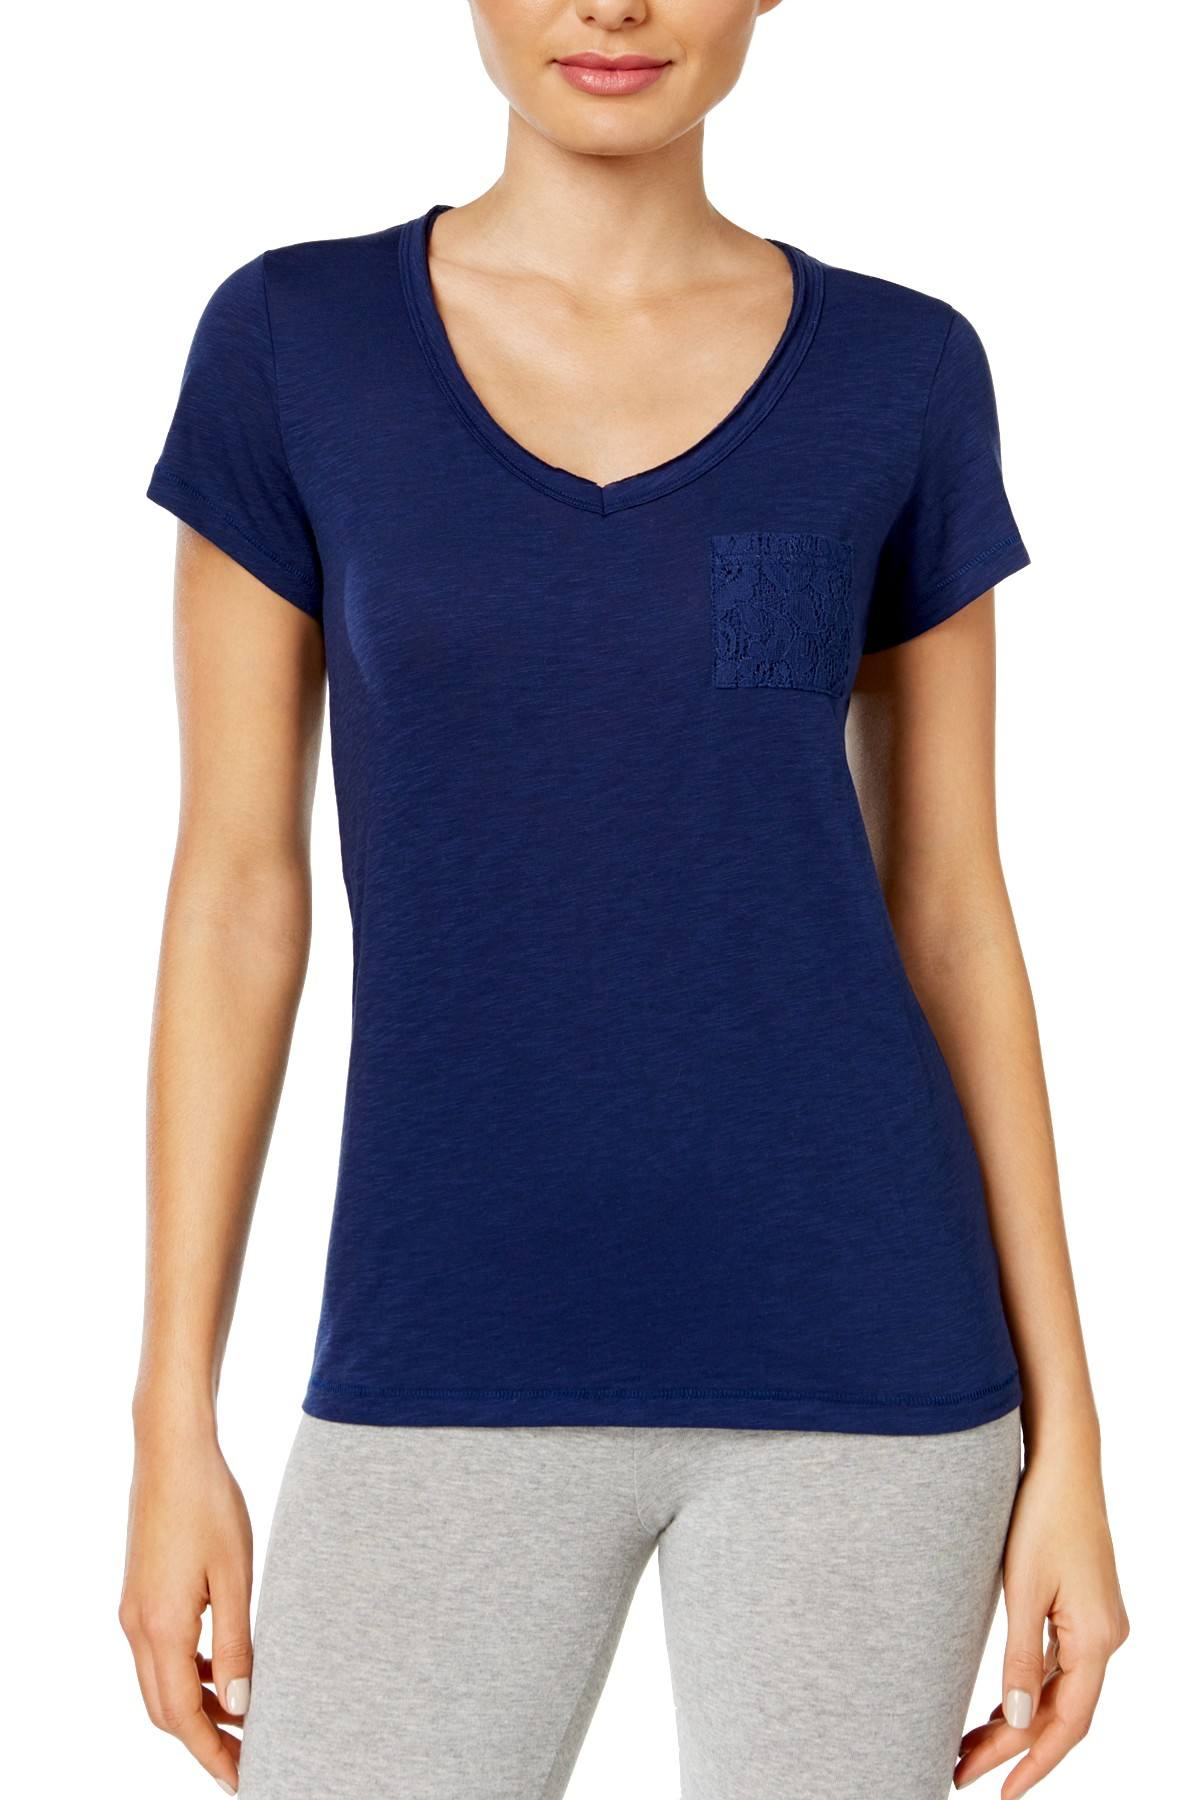 Jenni by Jennifer Moore Navy-Sea Lace-Pocket Lounge Top